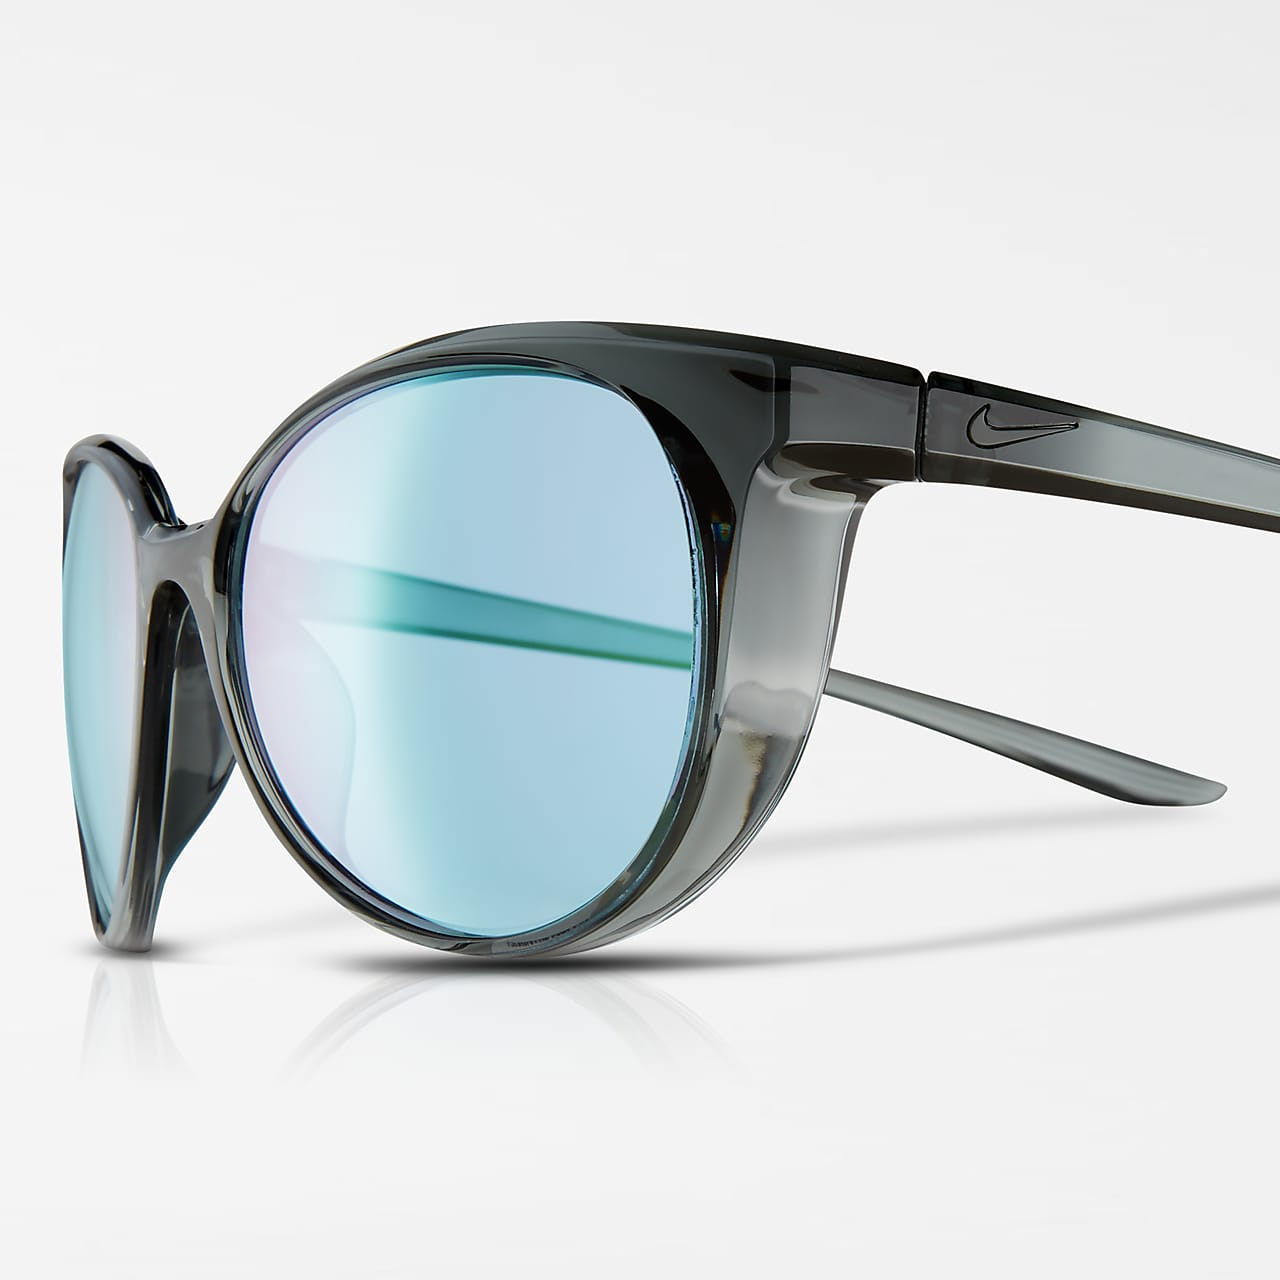 Nike Essence Mirrored Sunglasses